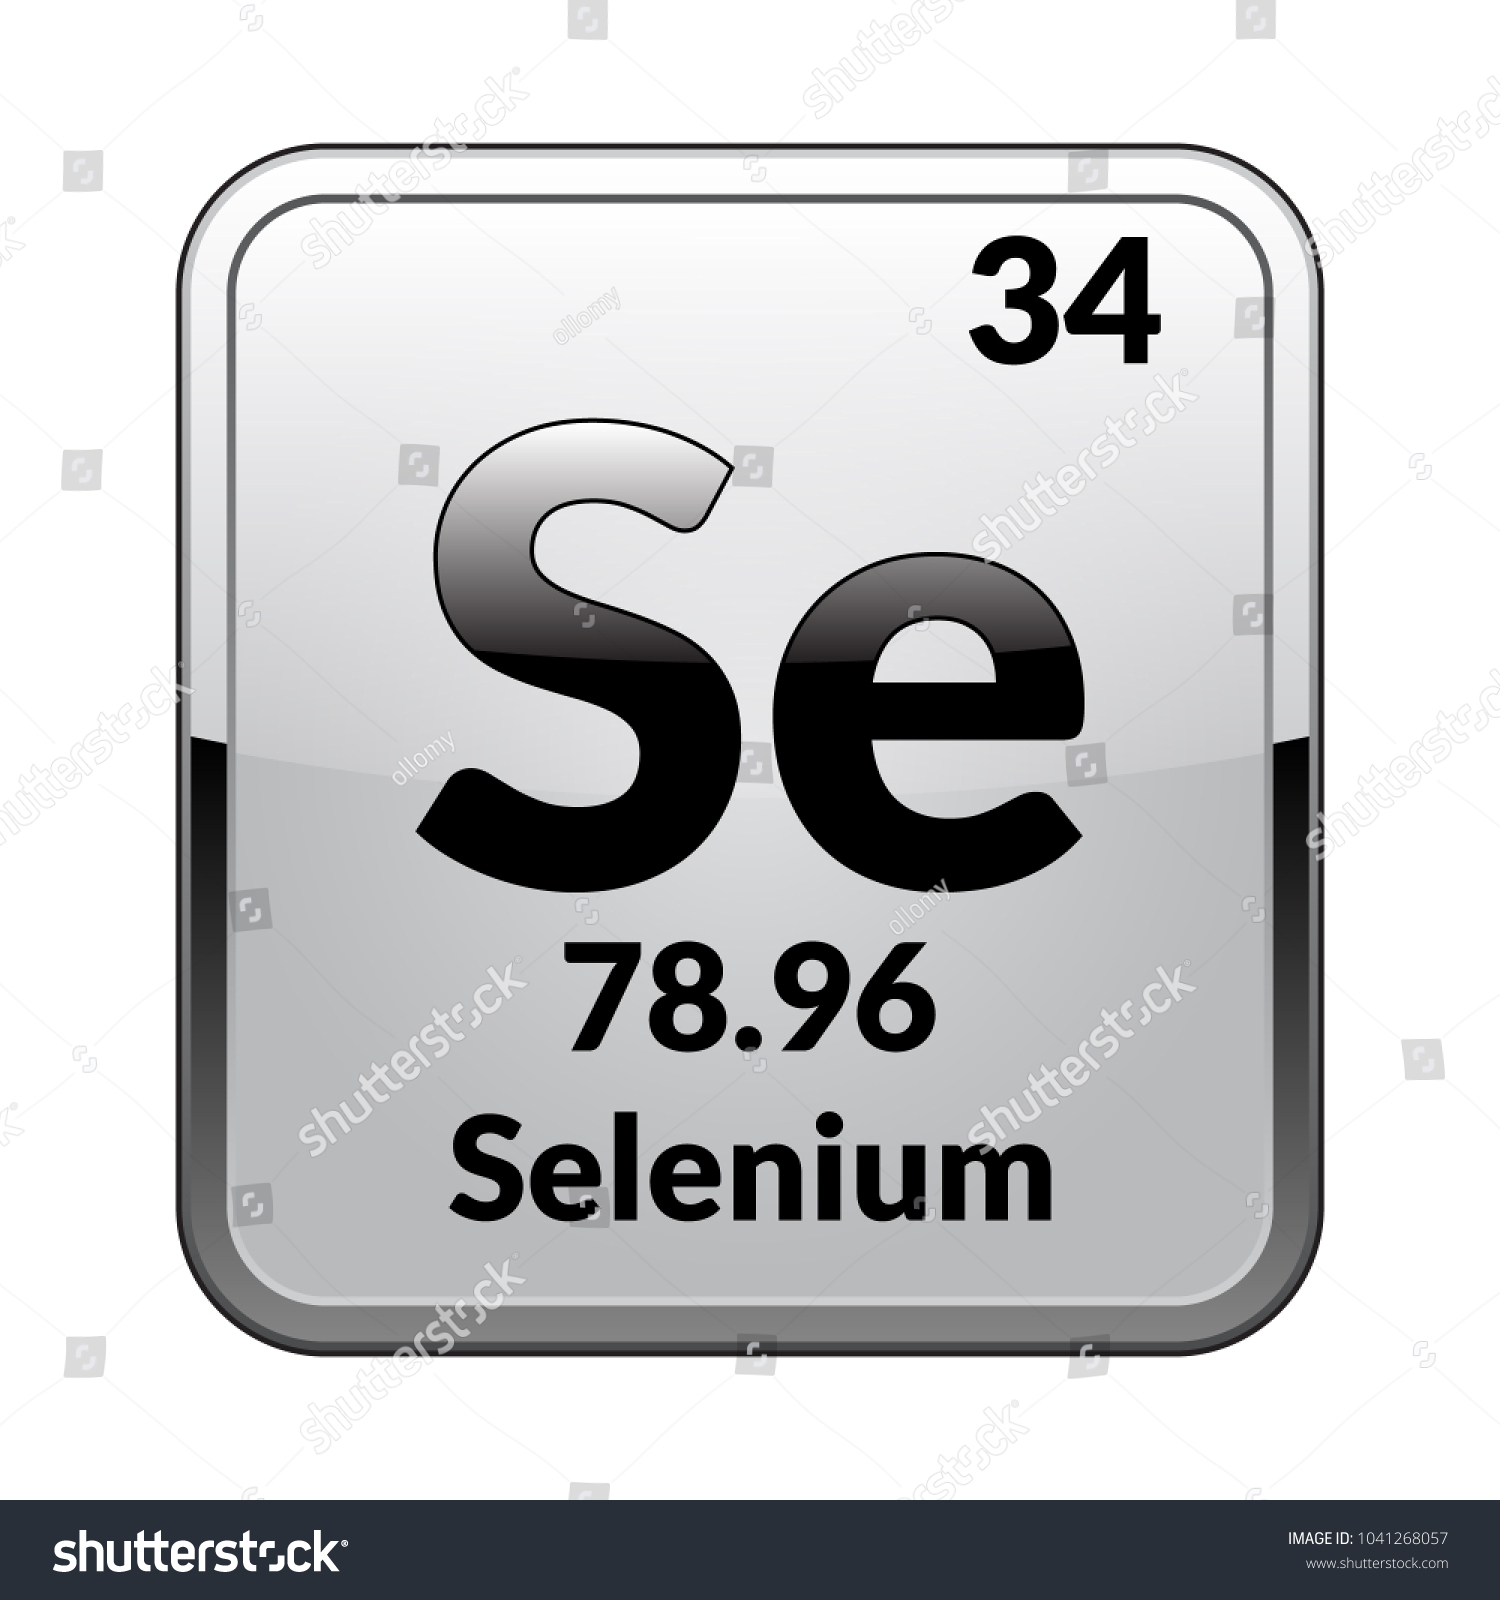 Element silver symbol gallery symbol and sign ideas selenium symbolchemical element periodic table on stock vector selenium symbolemical element of the periodic table on urtaz Image collections